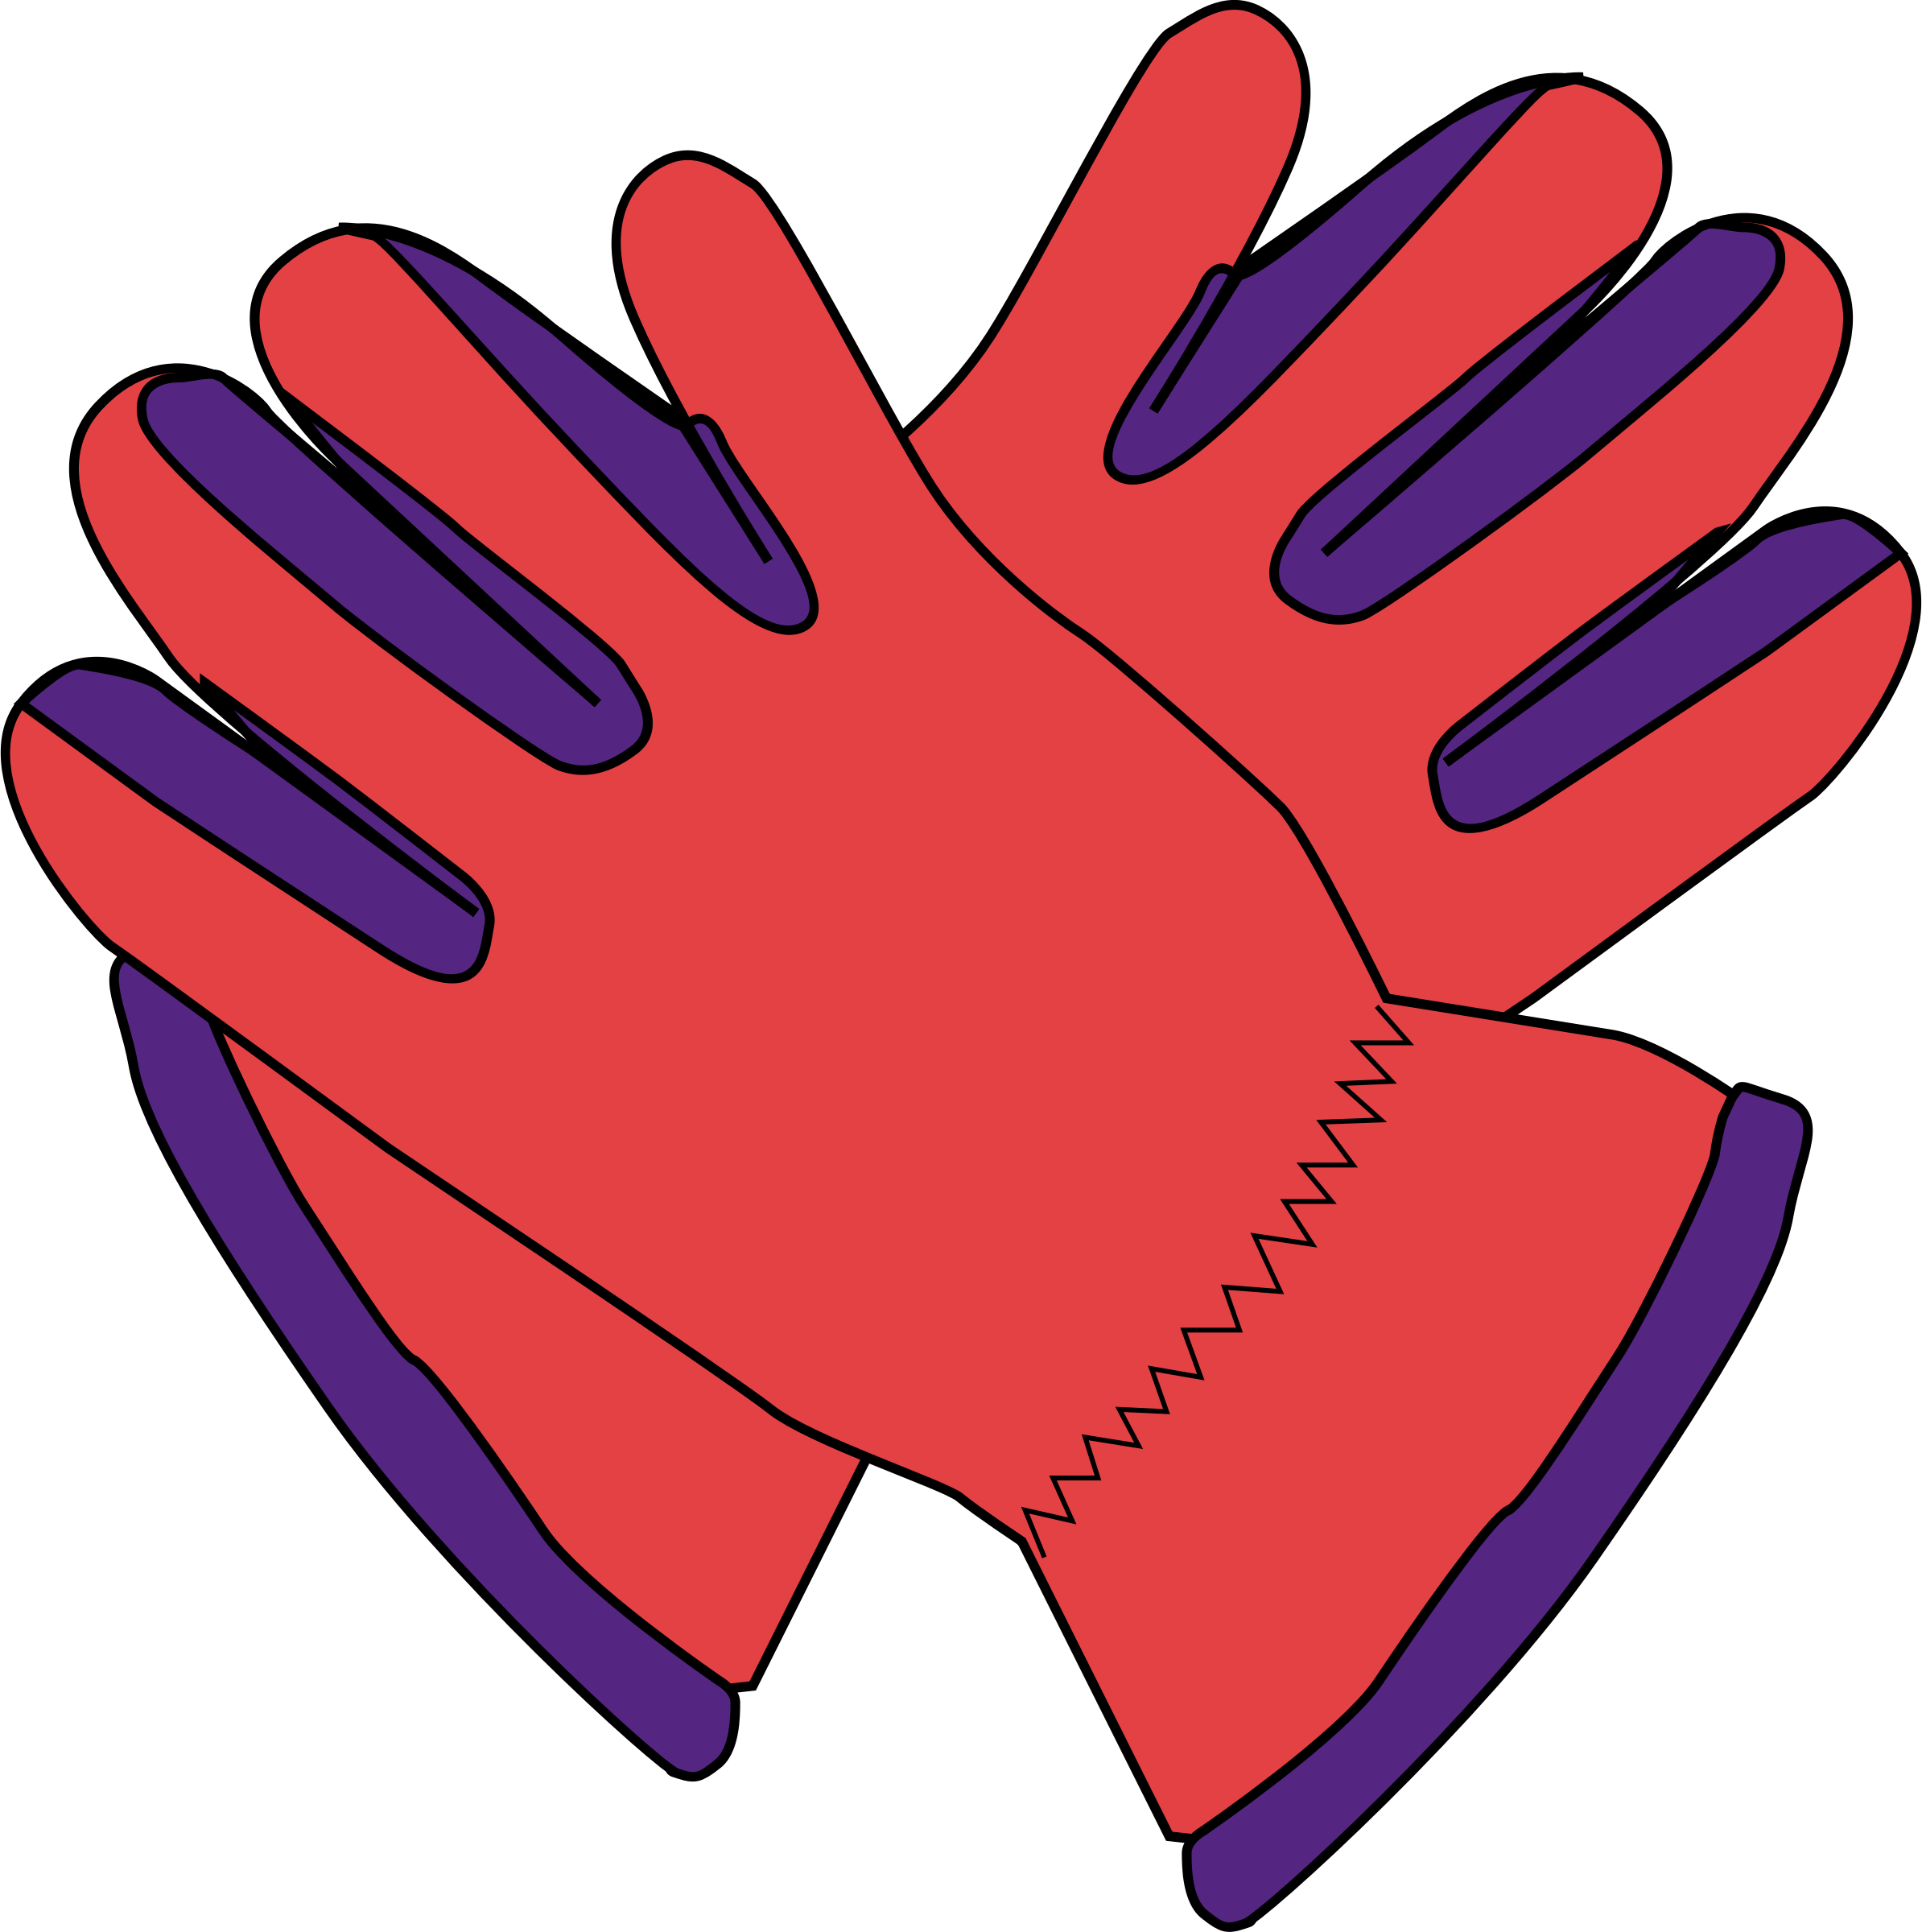 Football glove clipart picture transparent library Gloves Icons PNG - Free PNG and Icons Downloads picture transparent library